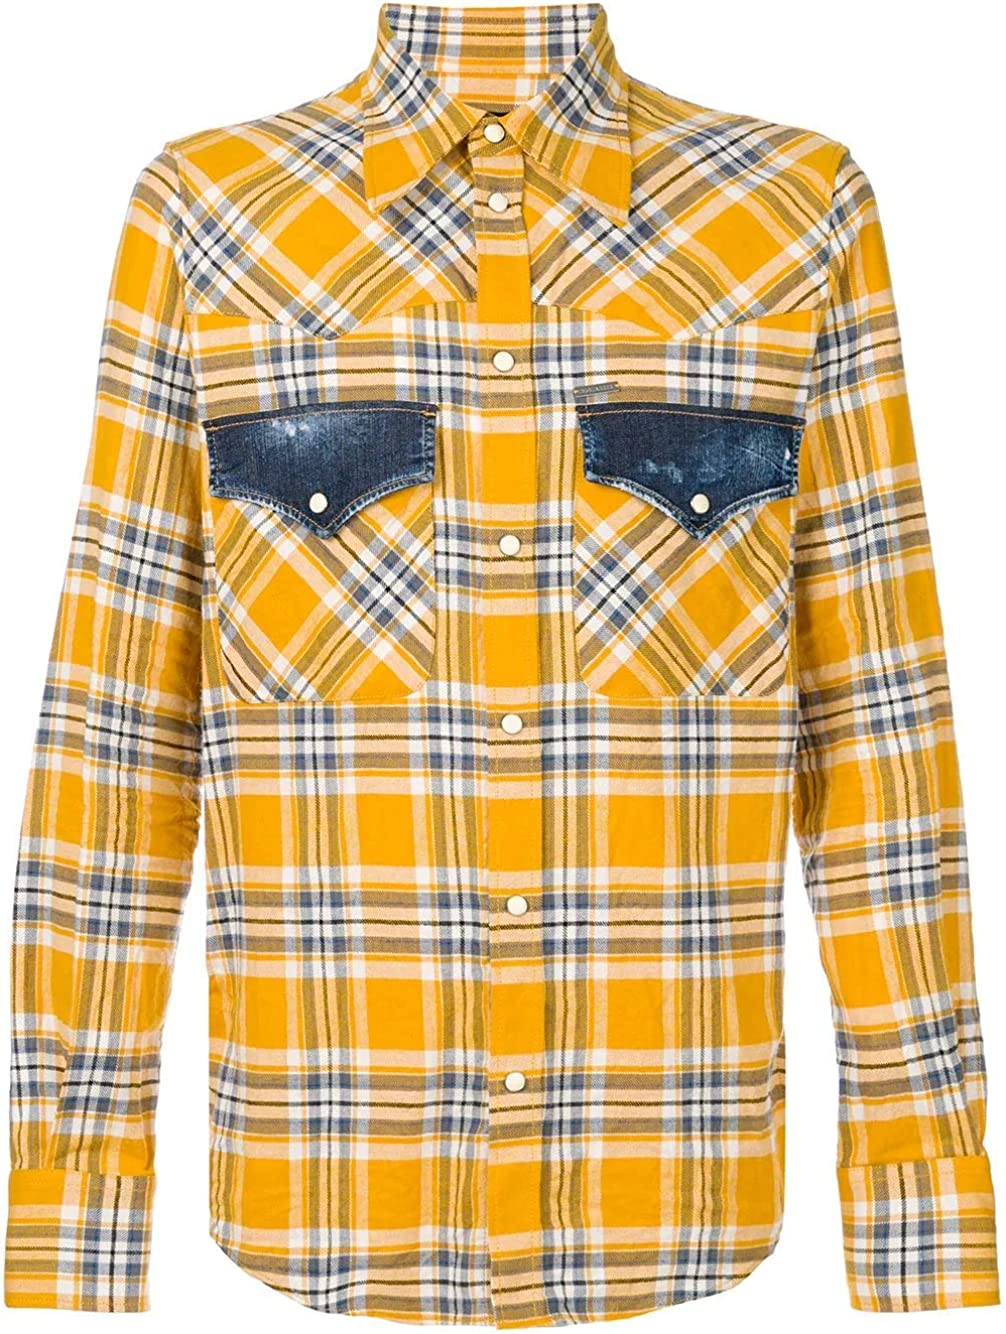 DSQUARED2 Camisa Cuadros Bolsillo Denim S74DM0172S48929 Color Amarillo, Talla 48.: Amazon.es: Ropa y accesorios